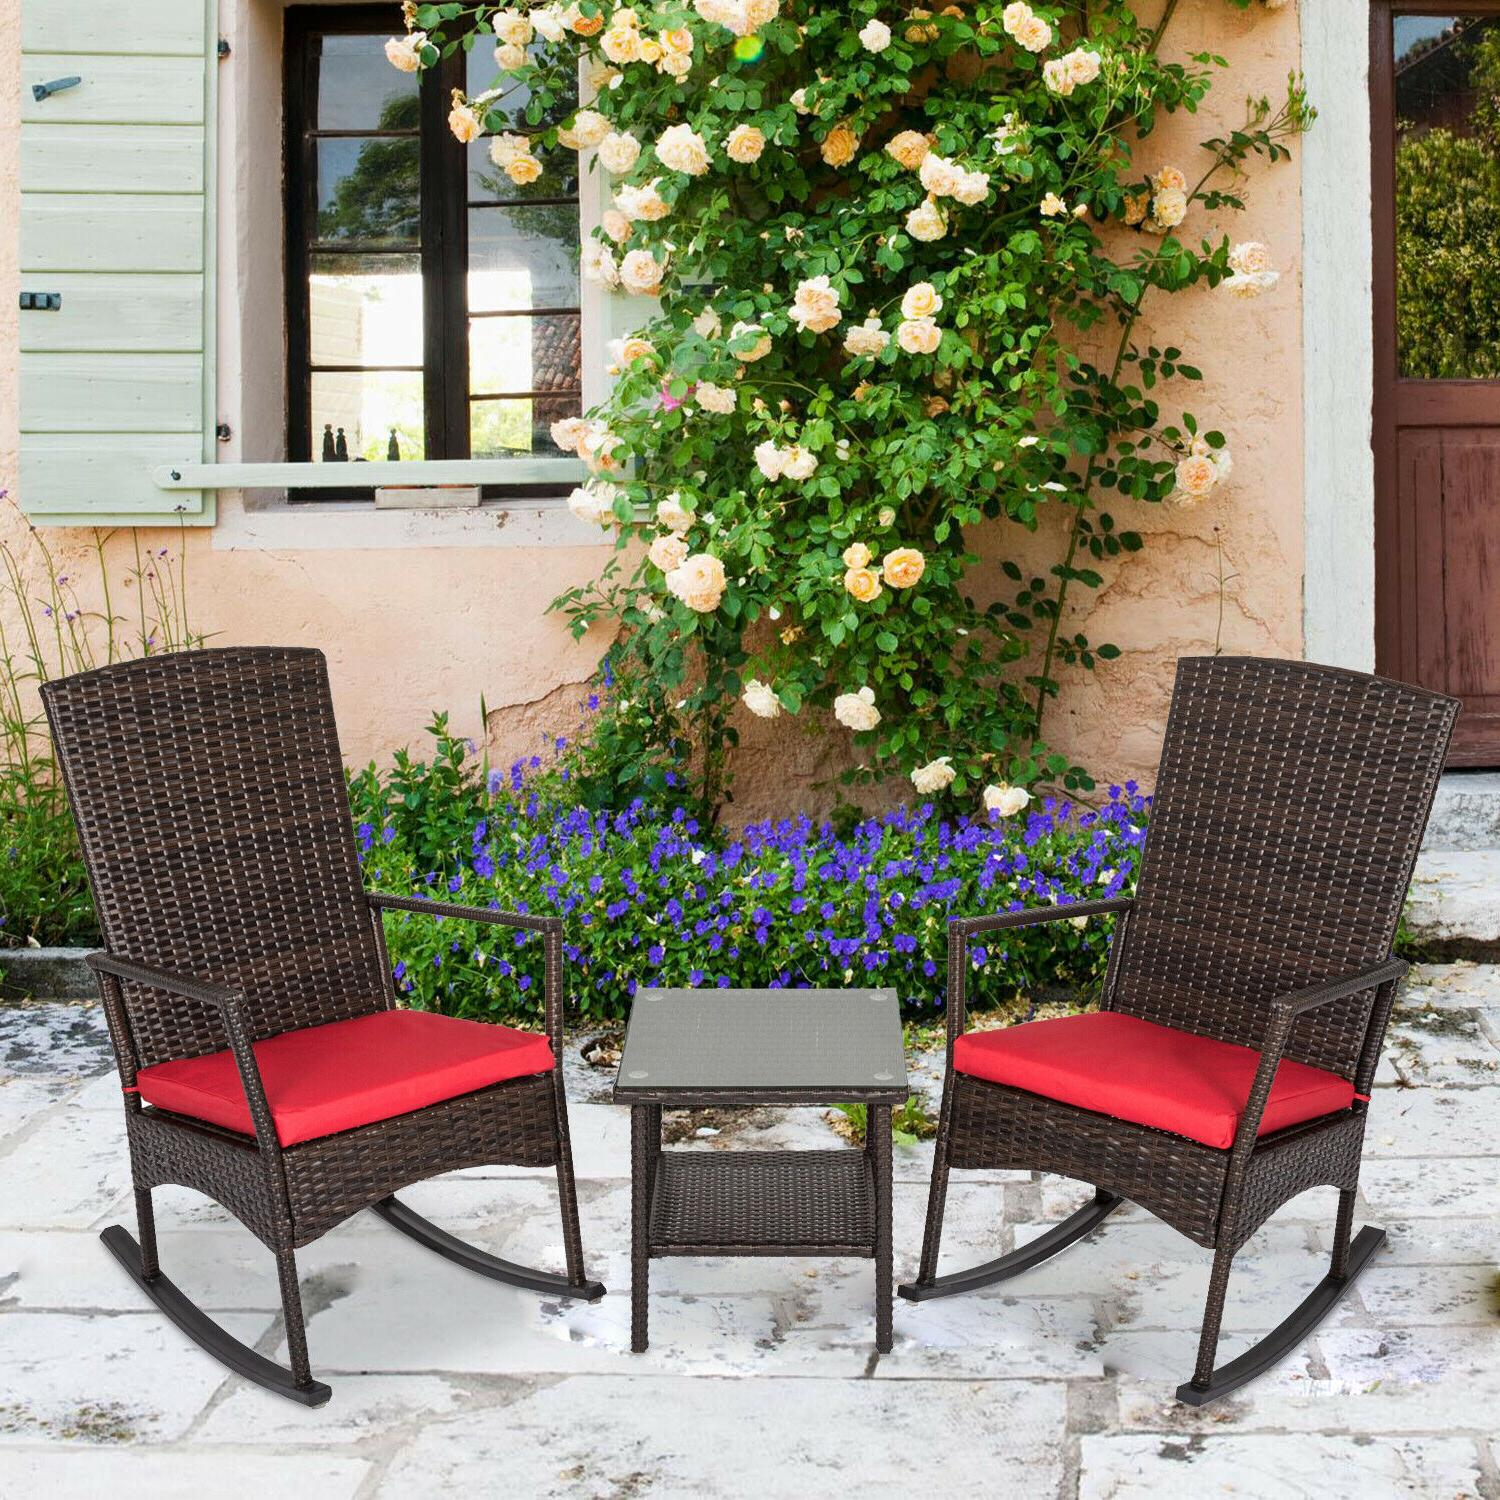 3 Pcs Outdoor Rattan Wicker Rocker Lounge Rocking Chair Pati